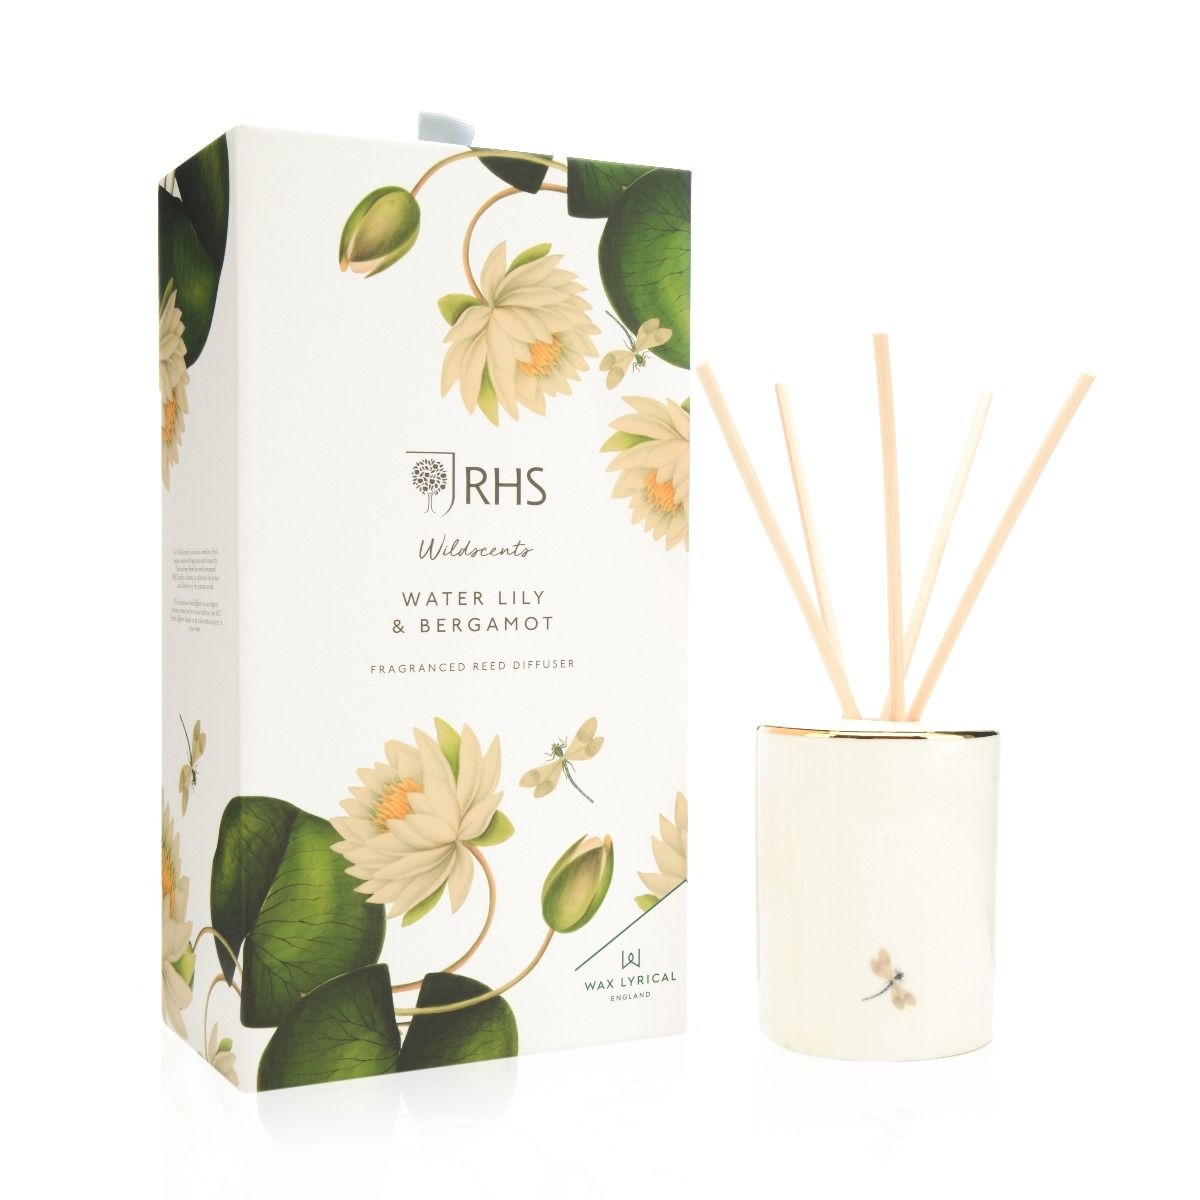 Water Lily & Bergamot Ceramic Reed Diffuser in Gift Box